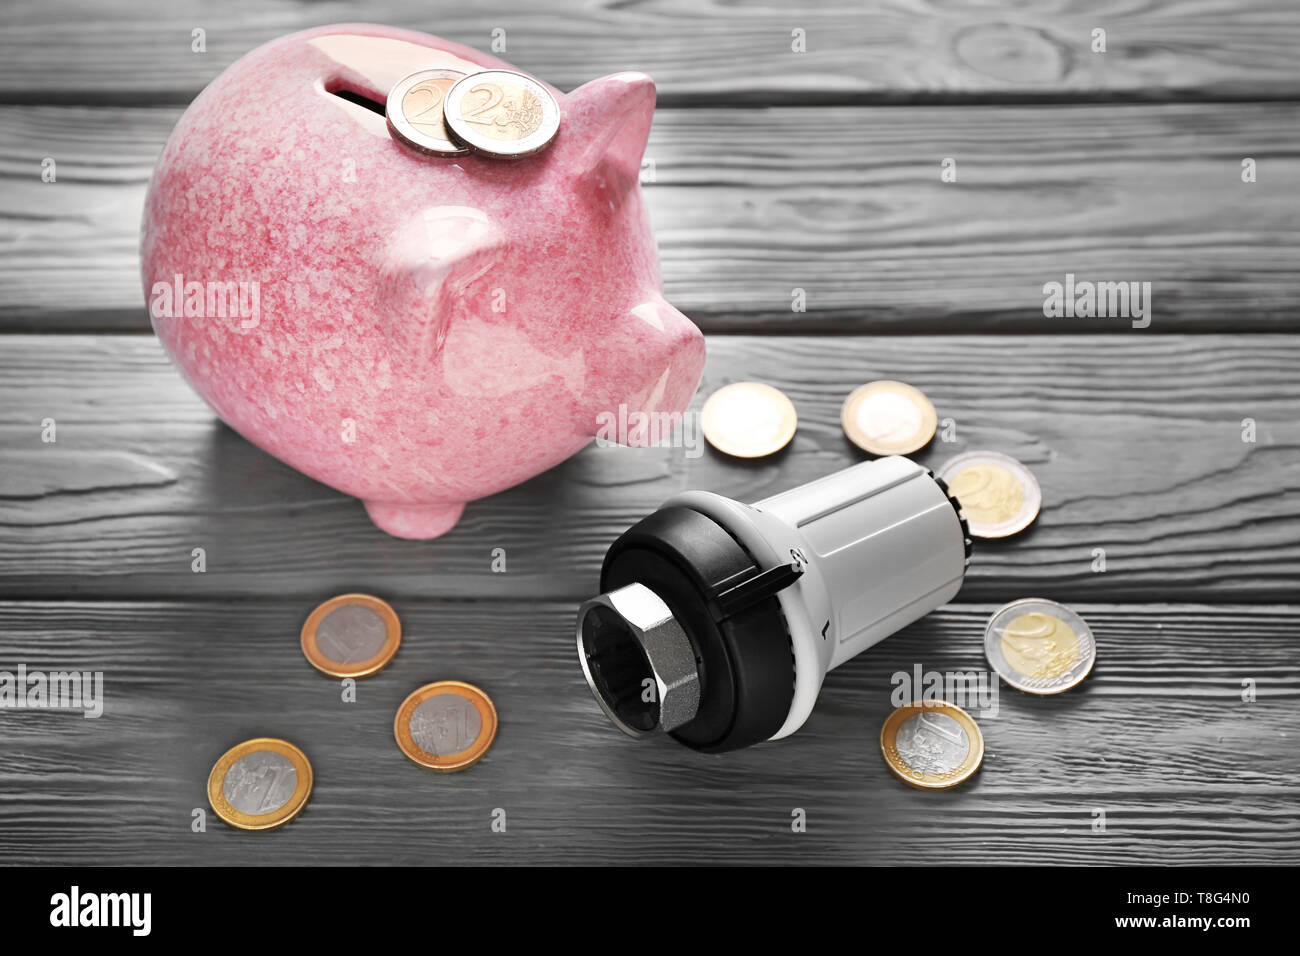 Piggy bank with coins and thermostat on wooden background. Heating saving concept - Stock Image